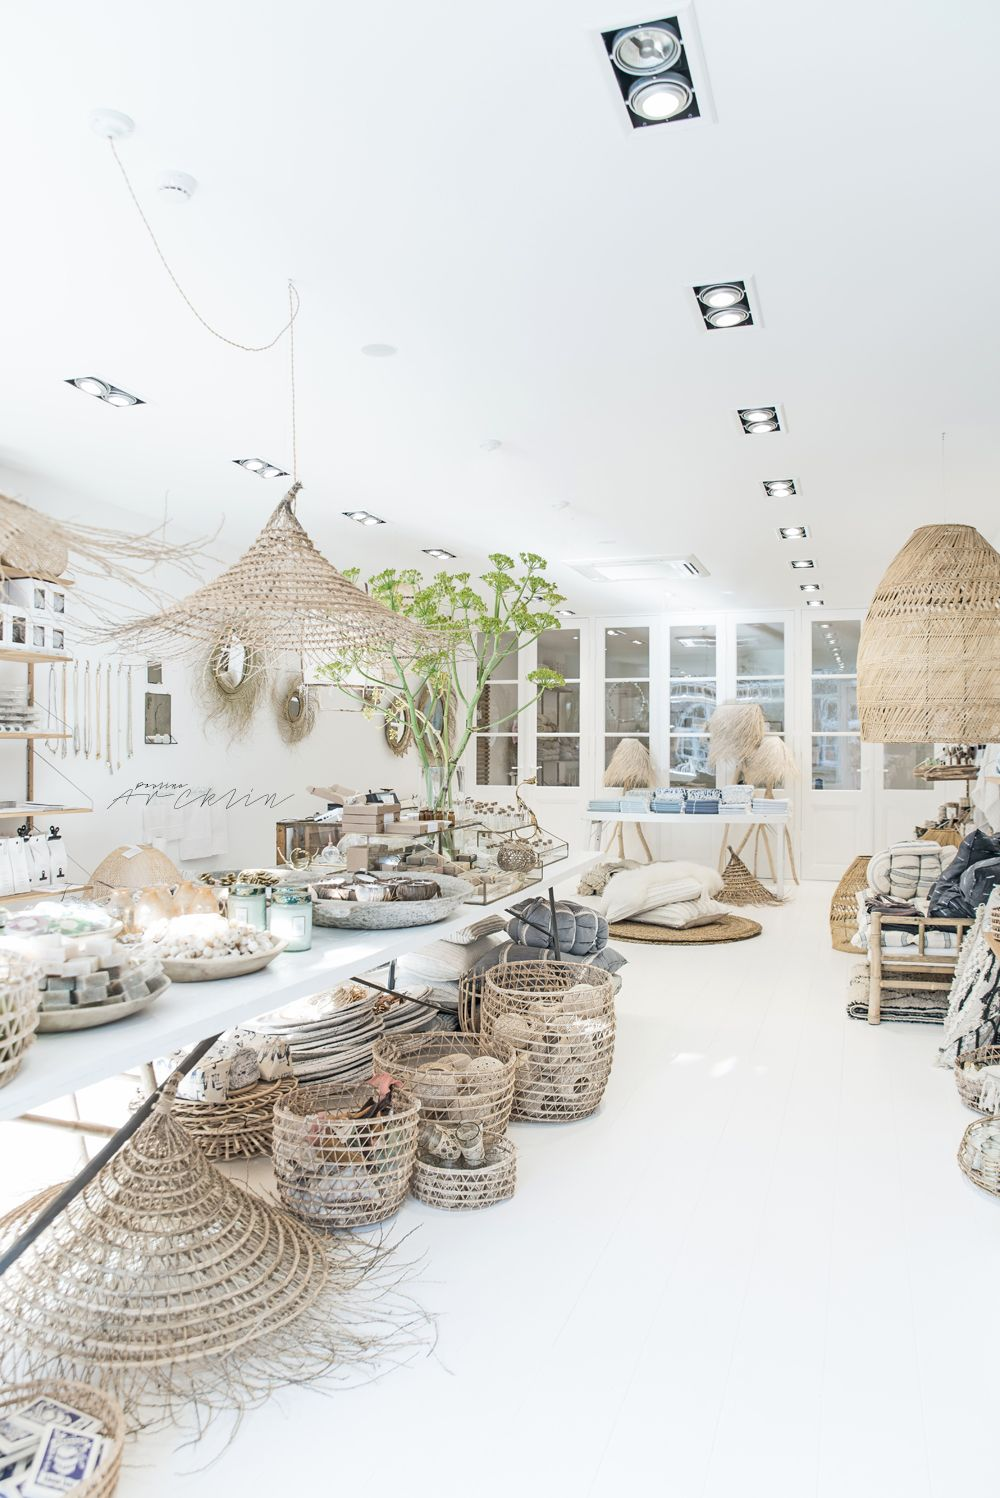 Interieur Winkel Bergen Pure House Ibiza My House By The Sea Winkel Interieur En